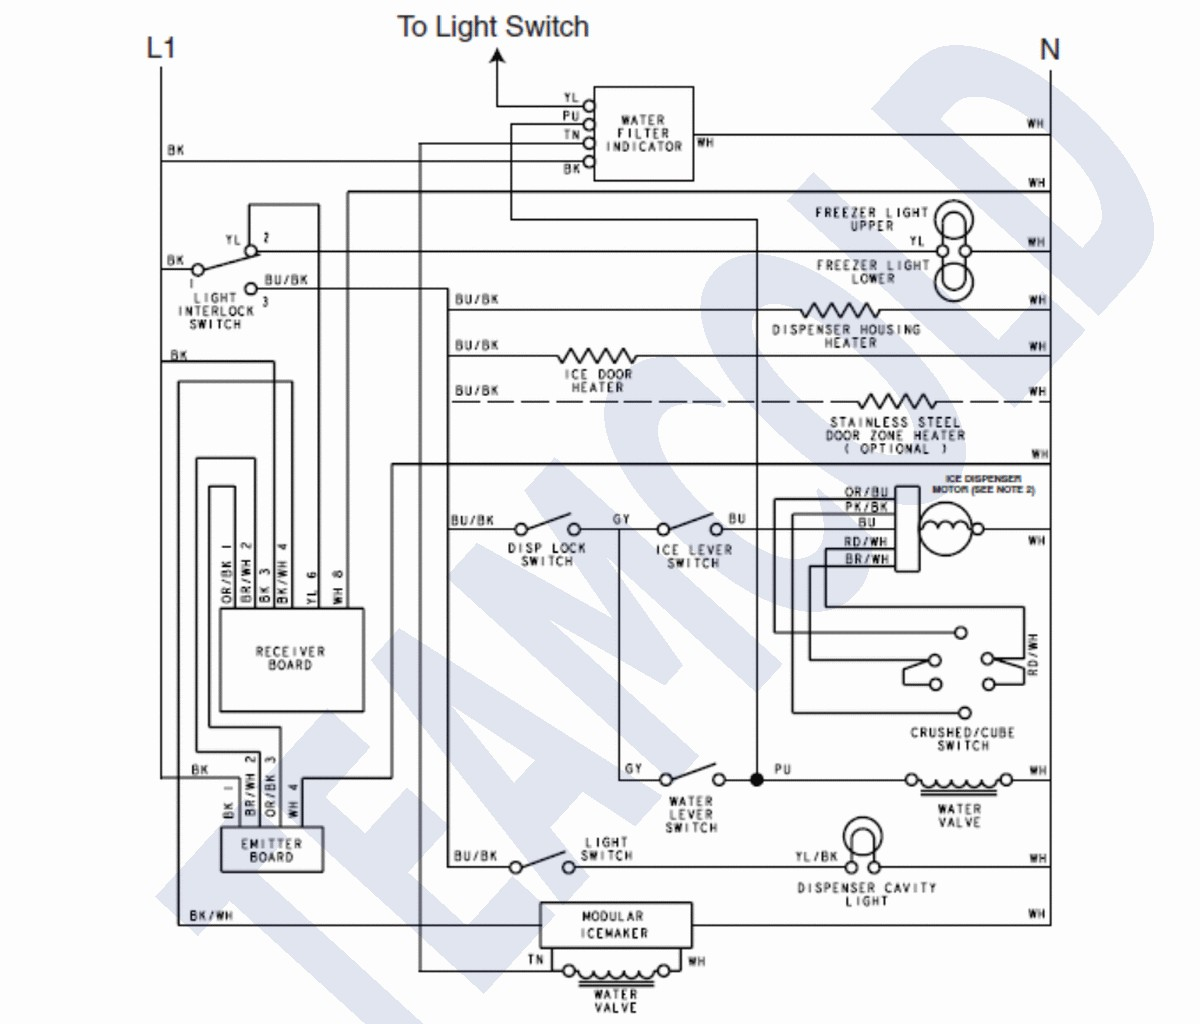 frigidaire ice maker wiring diagram Collection-Frigidaire Ice Maker Wiring Diagram And In Kenmore 12-m